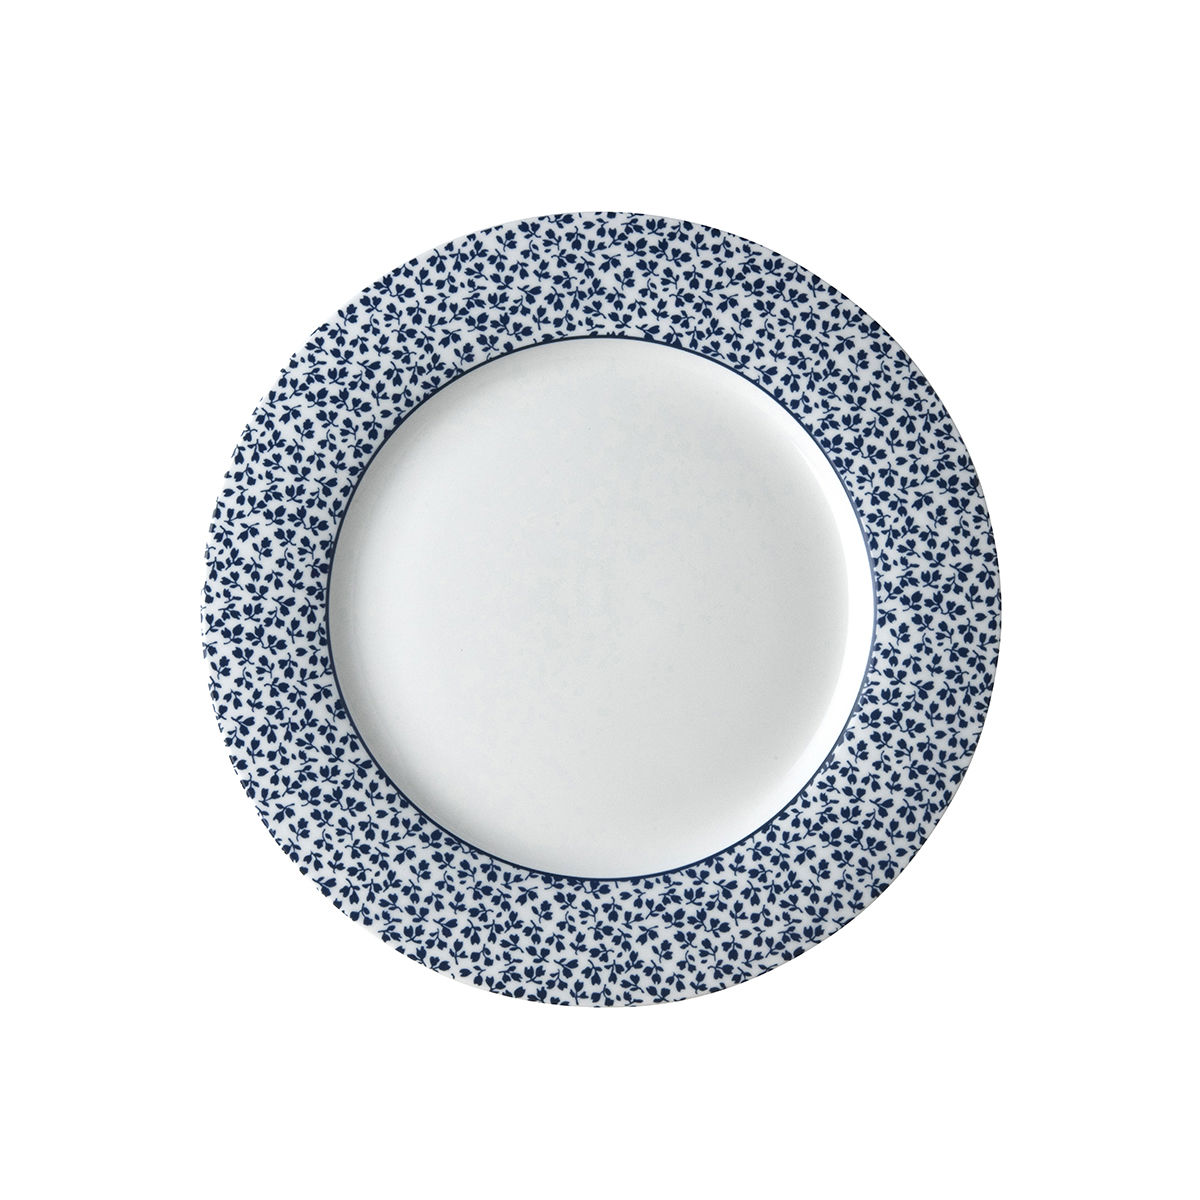 "Laura Ashley 9"" Plate Floris - product images  of"